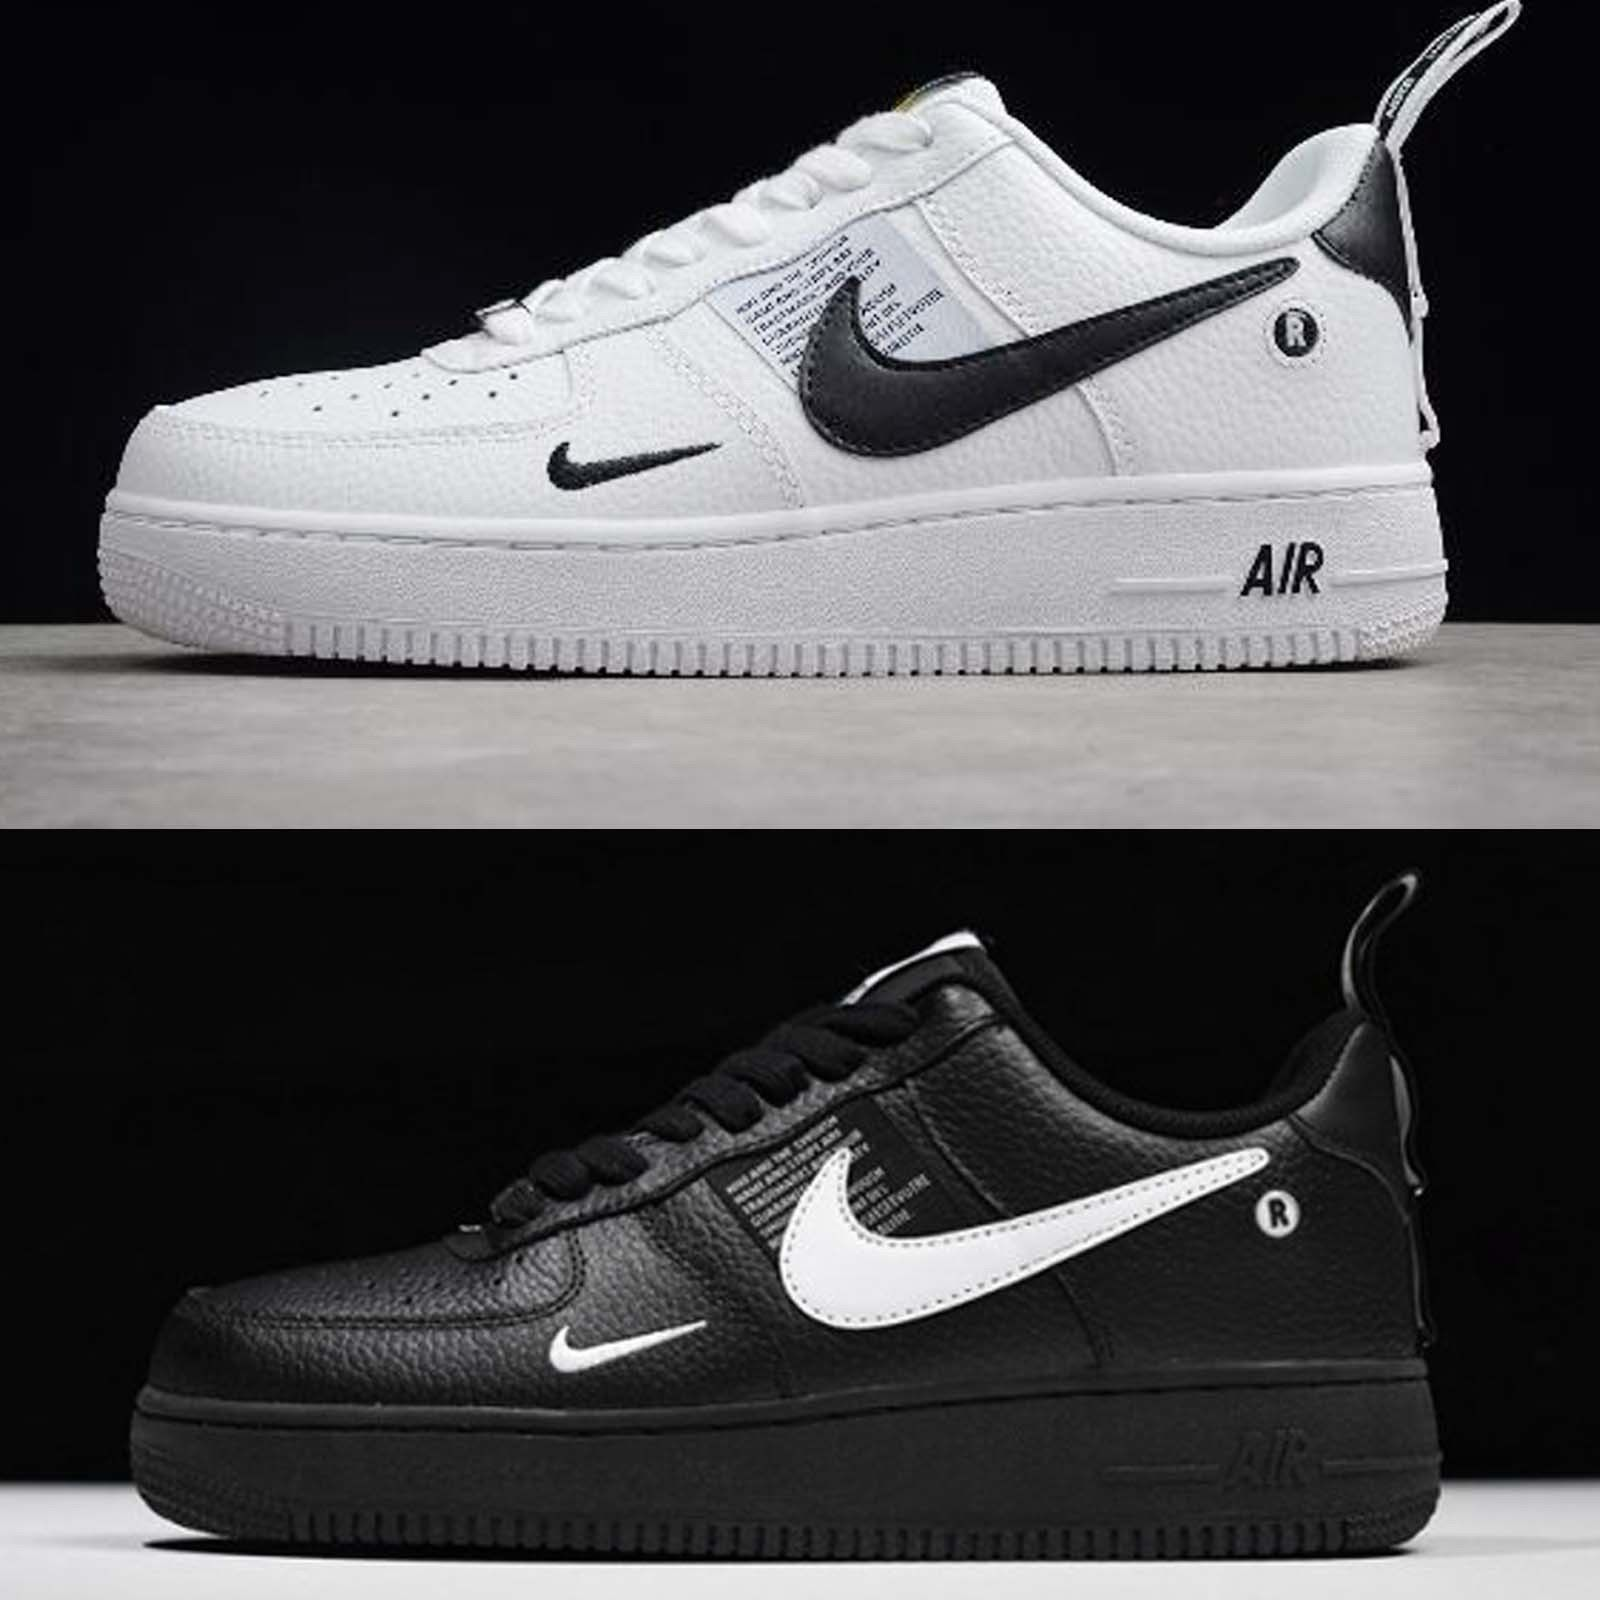 new arrival f5b7b 130fe Nike Air Force 1 07 LV8 utility back and white